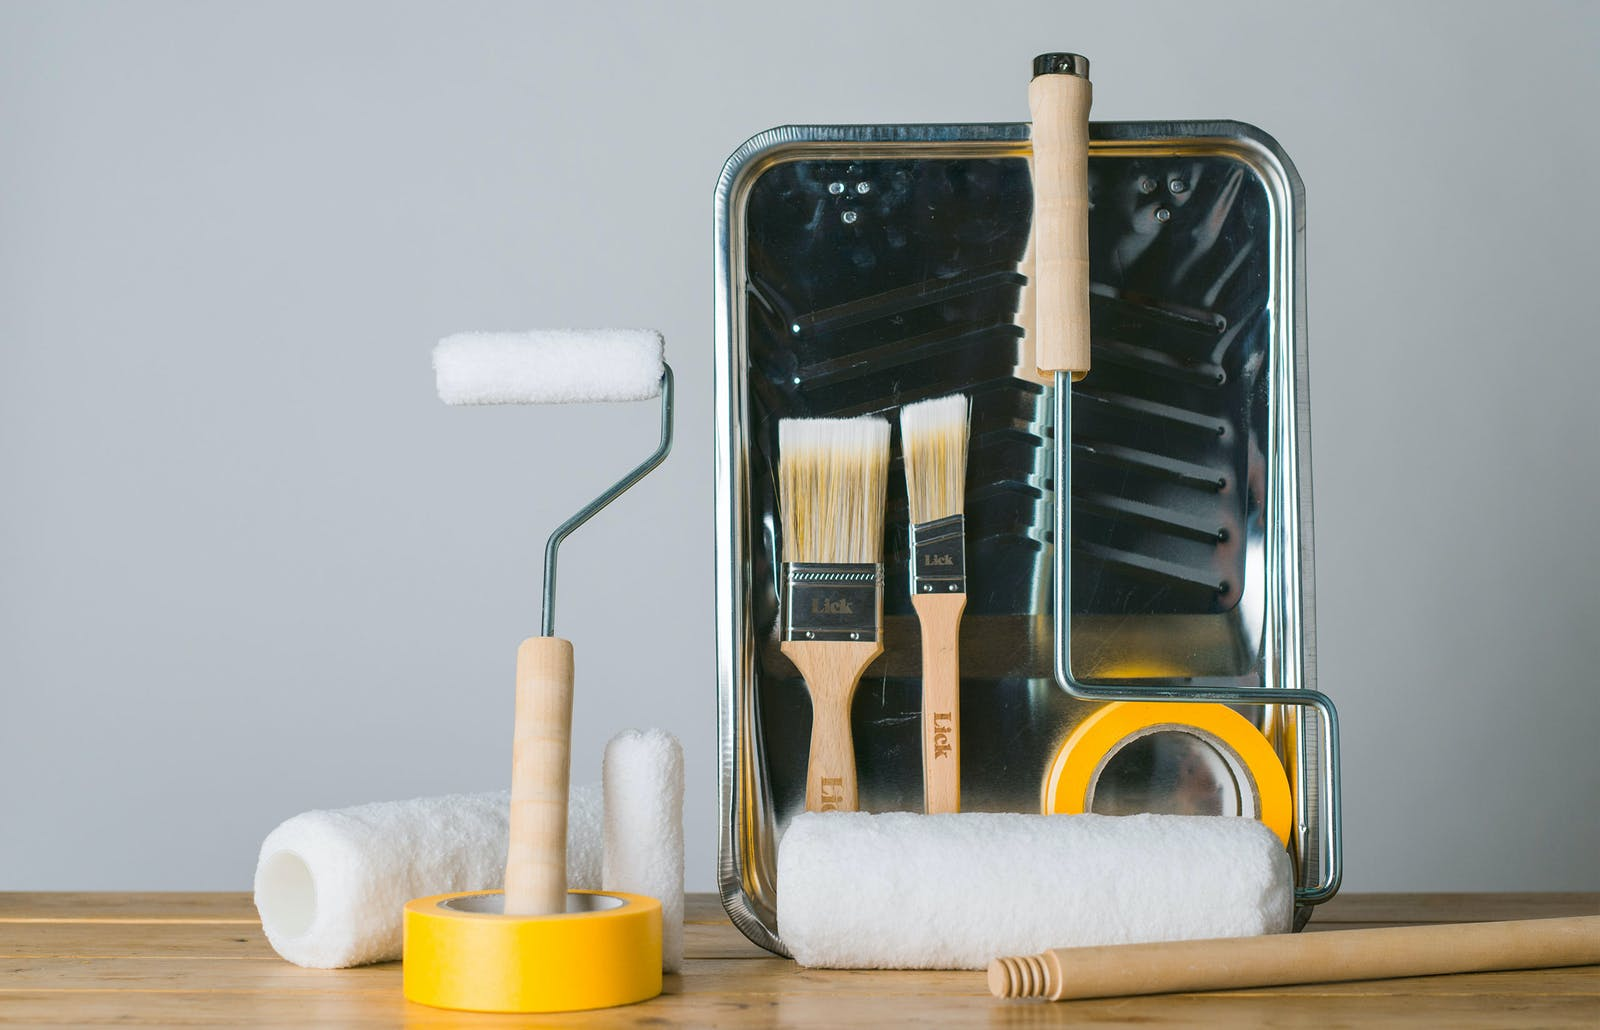 A collection of Lick painting and decorating tools including yellow tape, brushes, rollers and a tray.